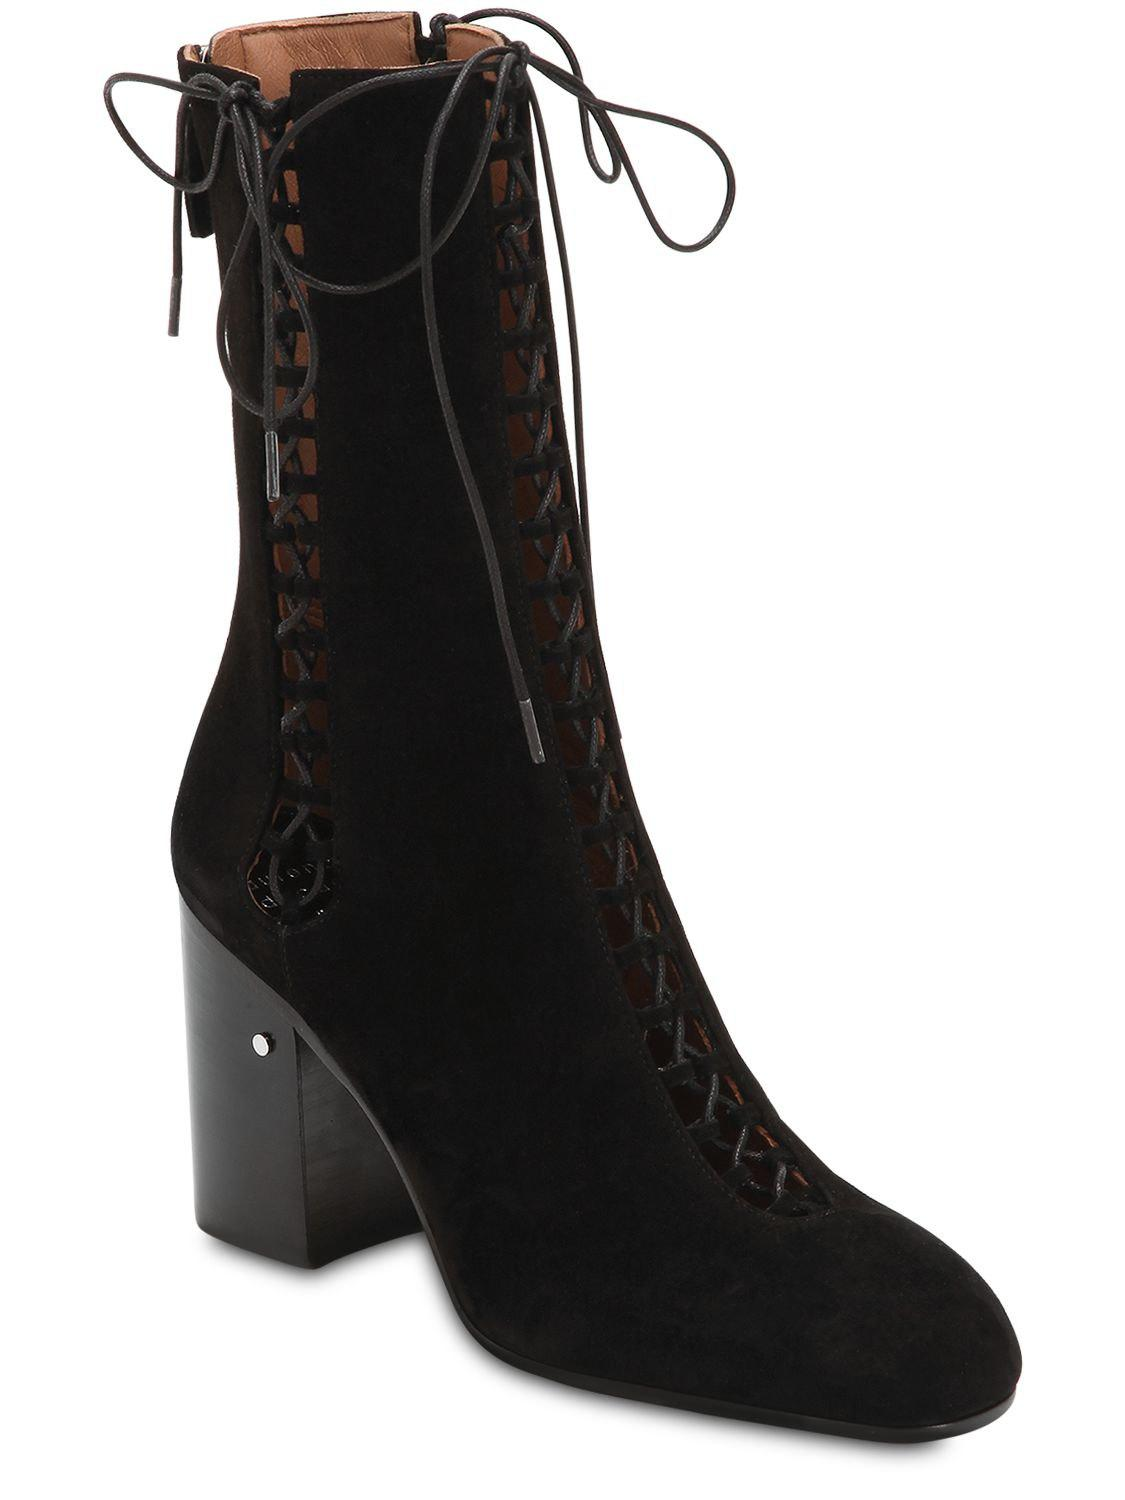 Up In Suzy 43 Save Boots 93241167434716 Black Dacade Laurence Lace SqFxPF7